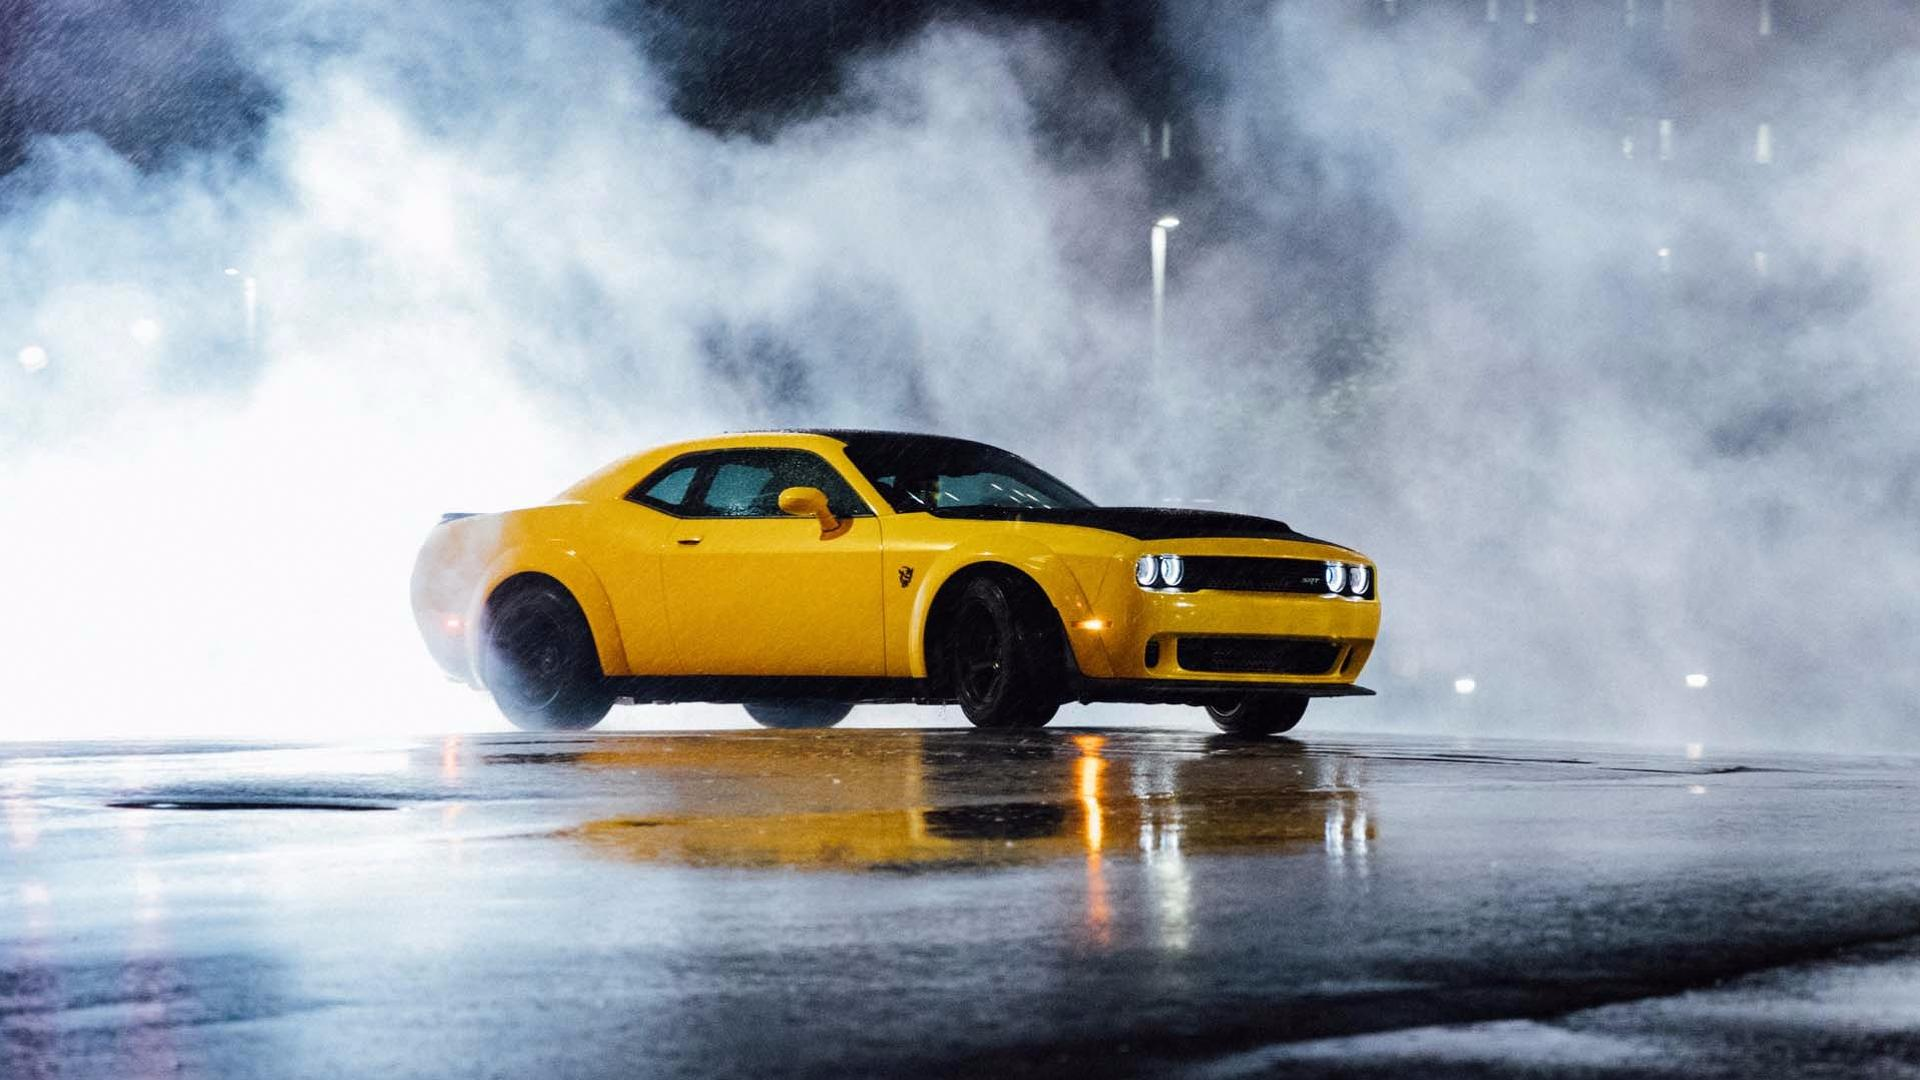 Dodge Challenger Hellcat For Sale >> Pennzoil Proves Dodge Demon Can Drift In Latest Video